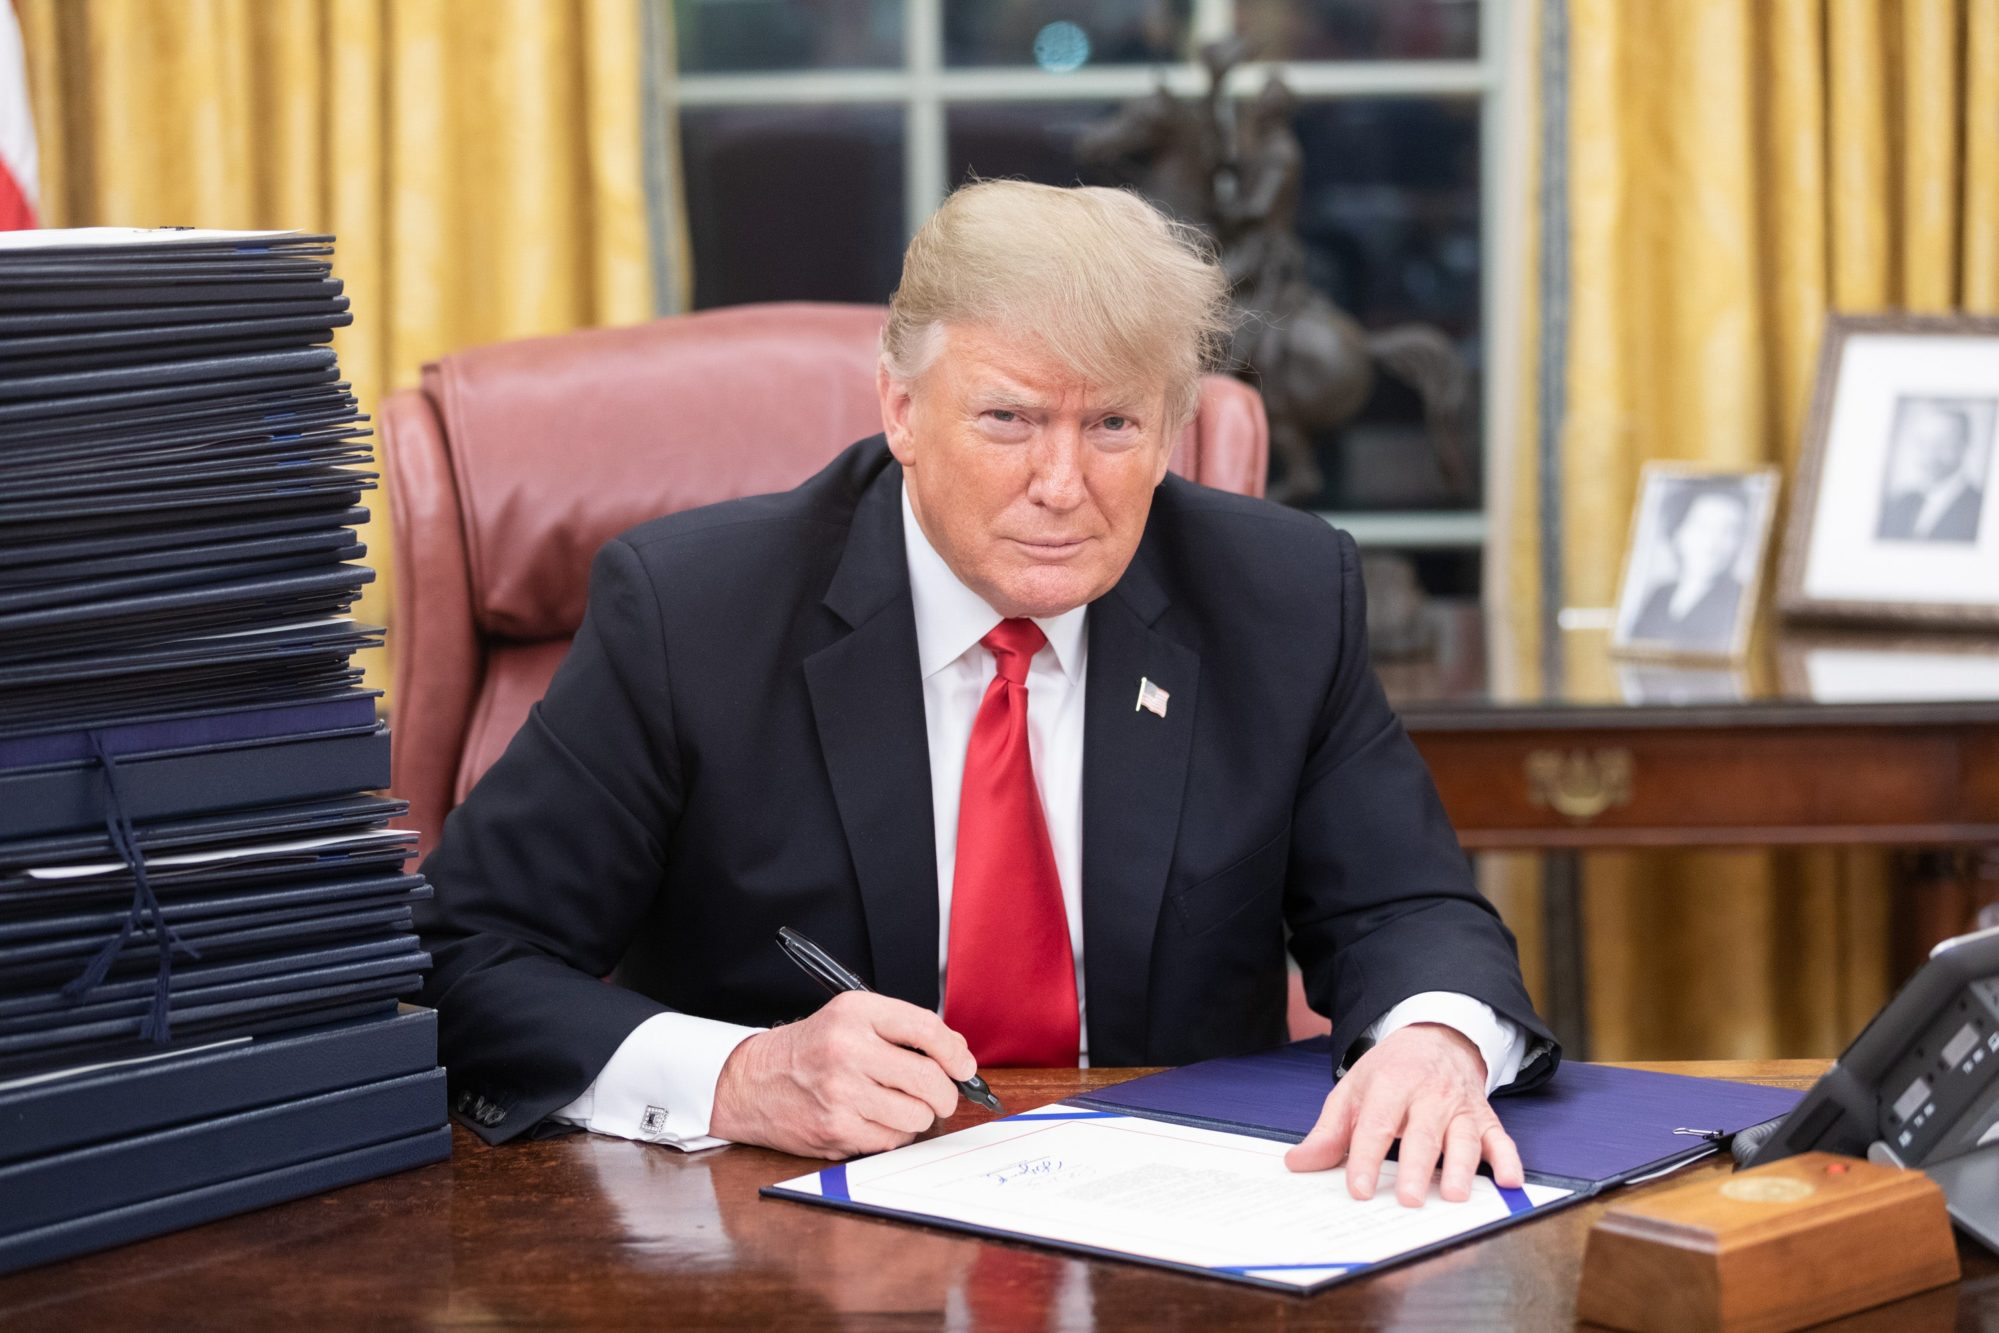 Donald Trump signing in the oval office